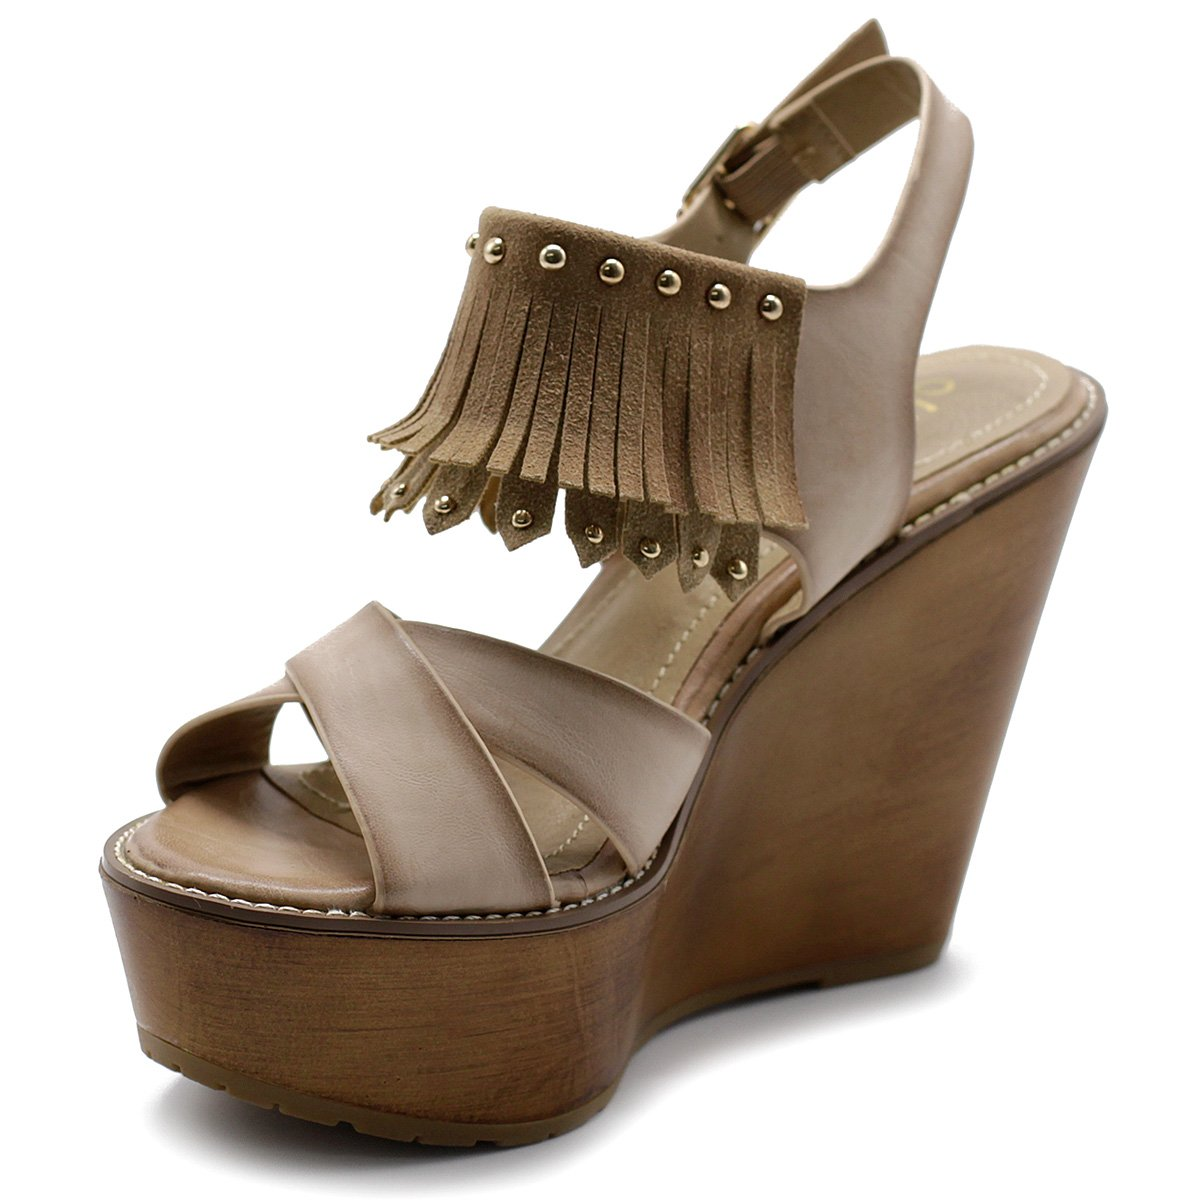 Ollio Womens Sandal Shoe Burnish Vintage Faded Fringe Wedge Heel Sandal Womens B01CPOAN78 Parent 39a82a